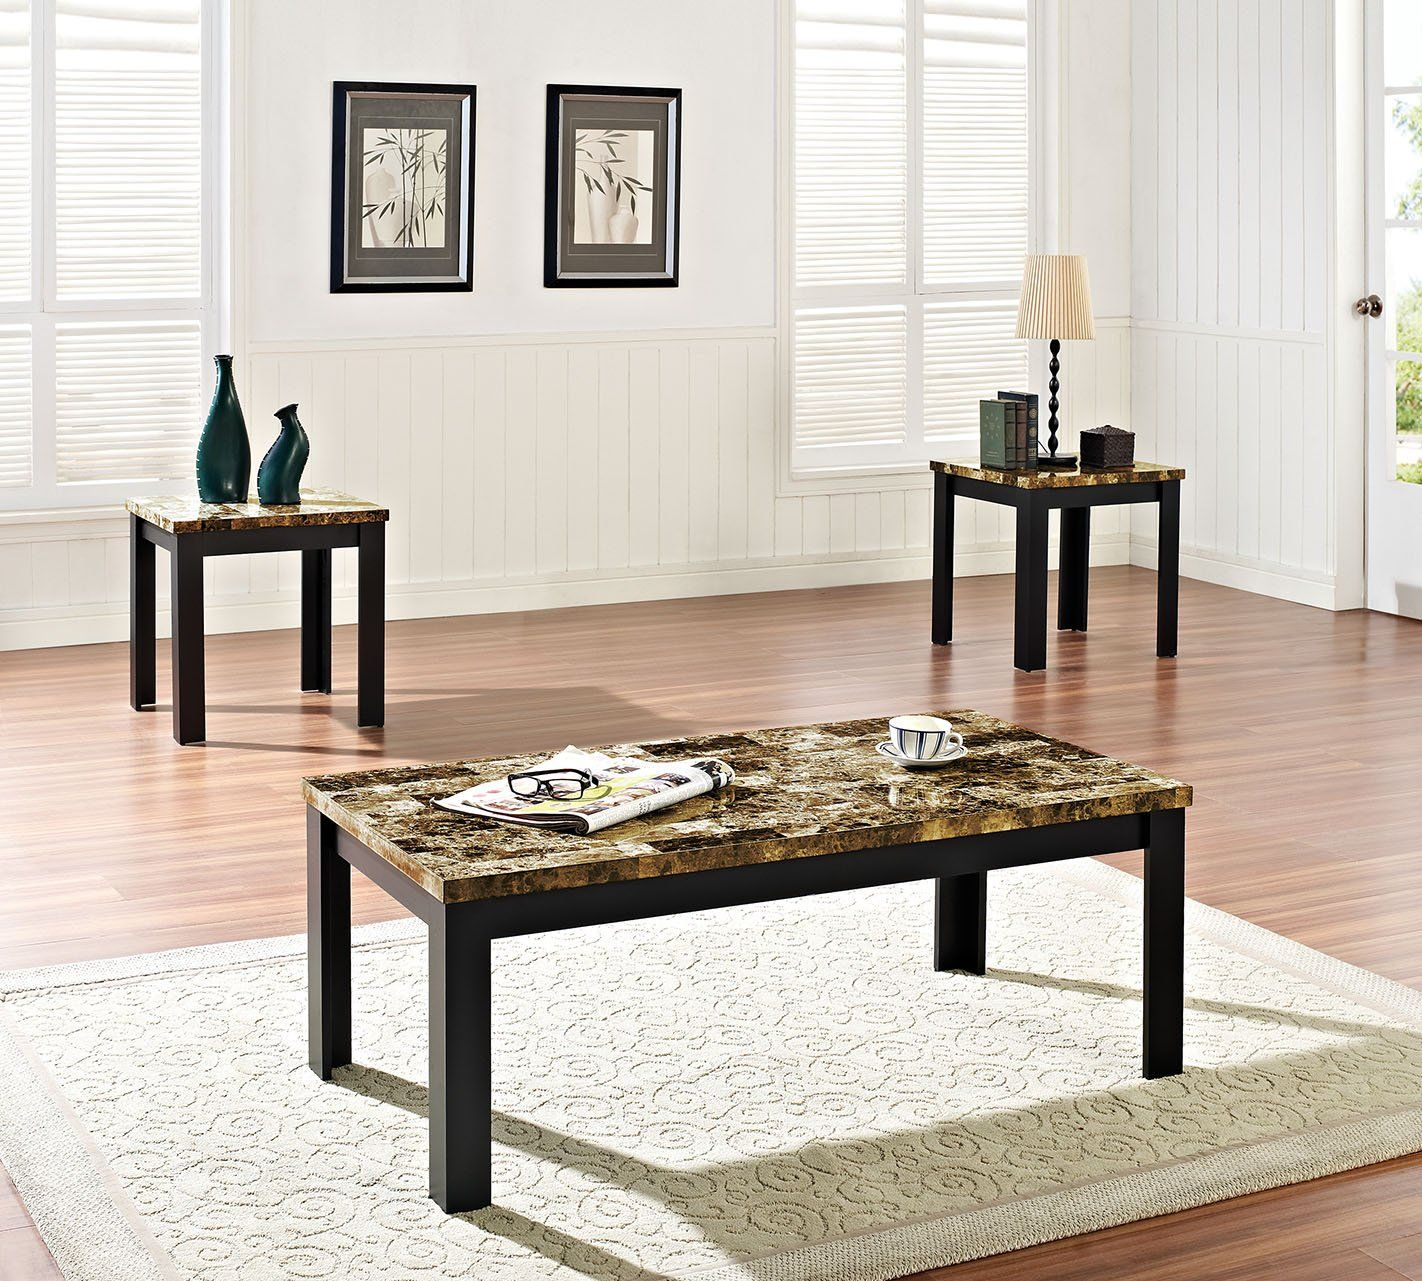 Acme 80320 Finely Black 3 Pieces Faux Faux Marble Top Coffee Table